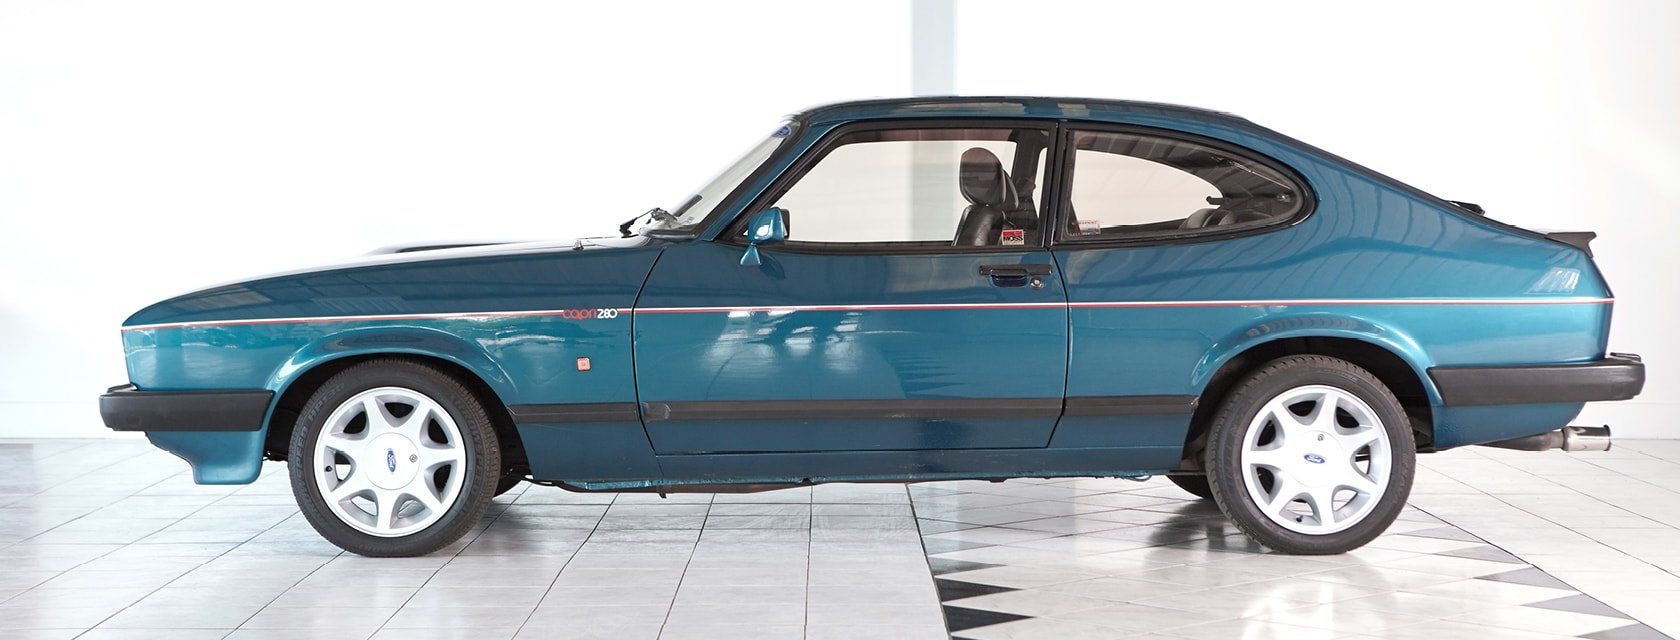 1987 Ford Capri 280 Brooklands SOLD (picture 1 of 10)